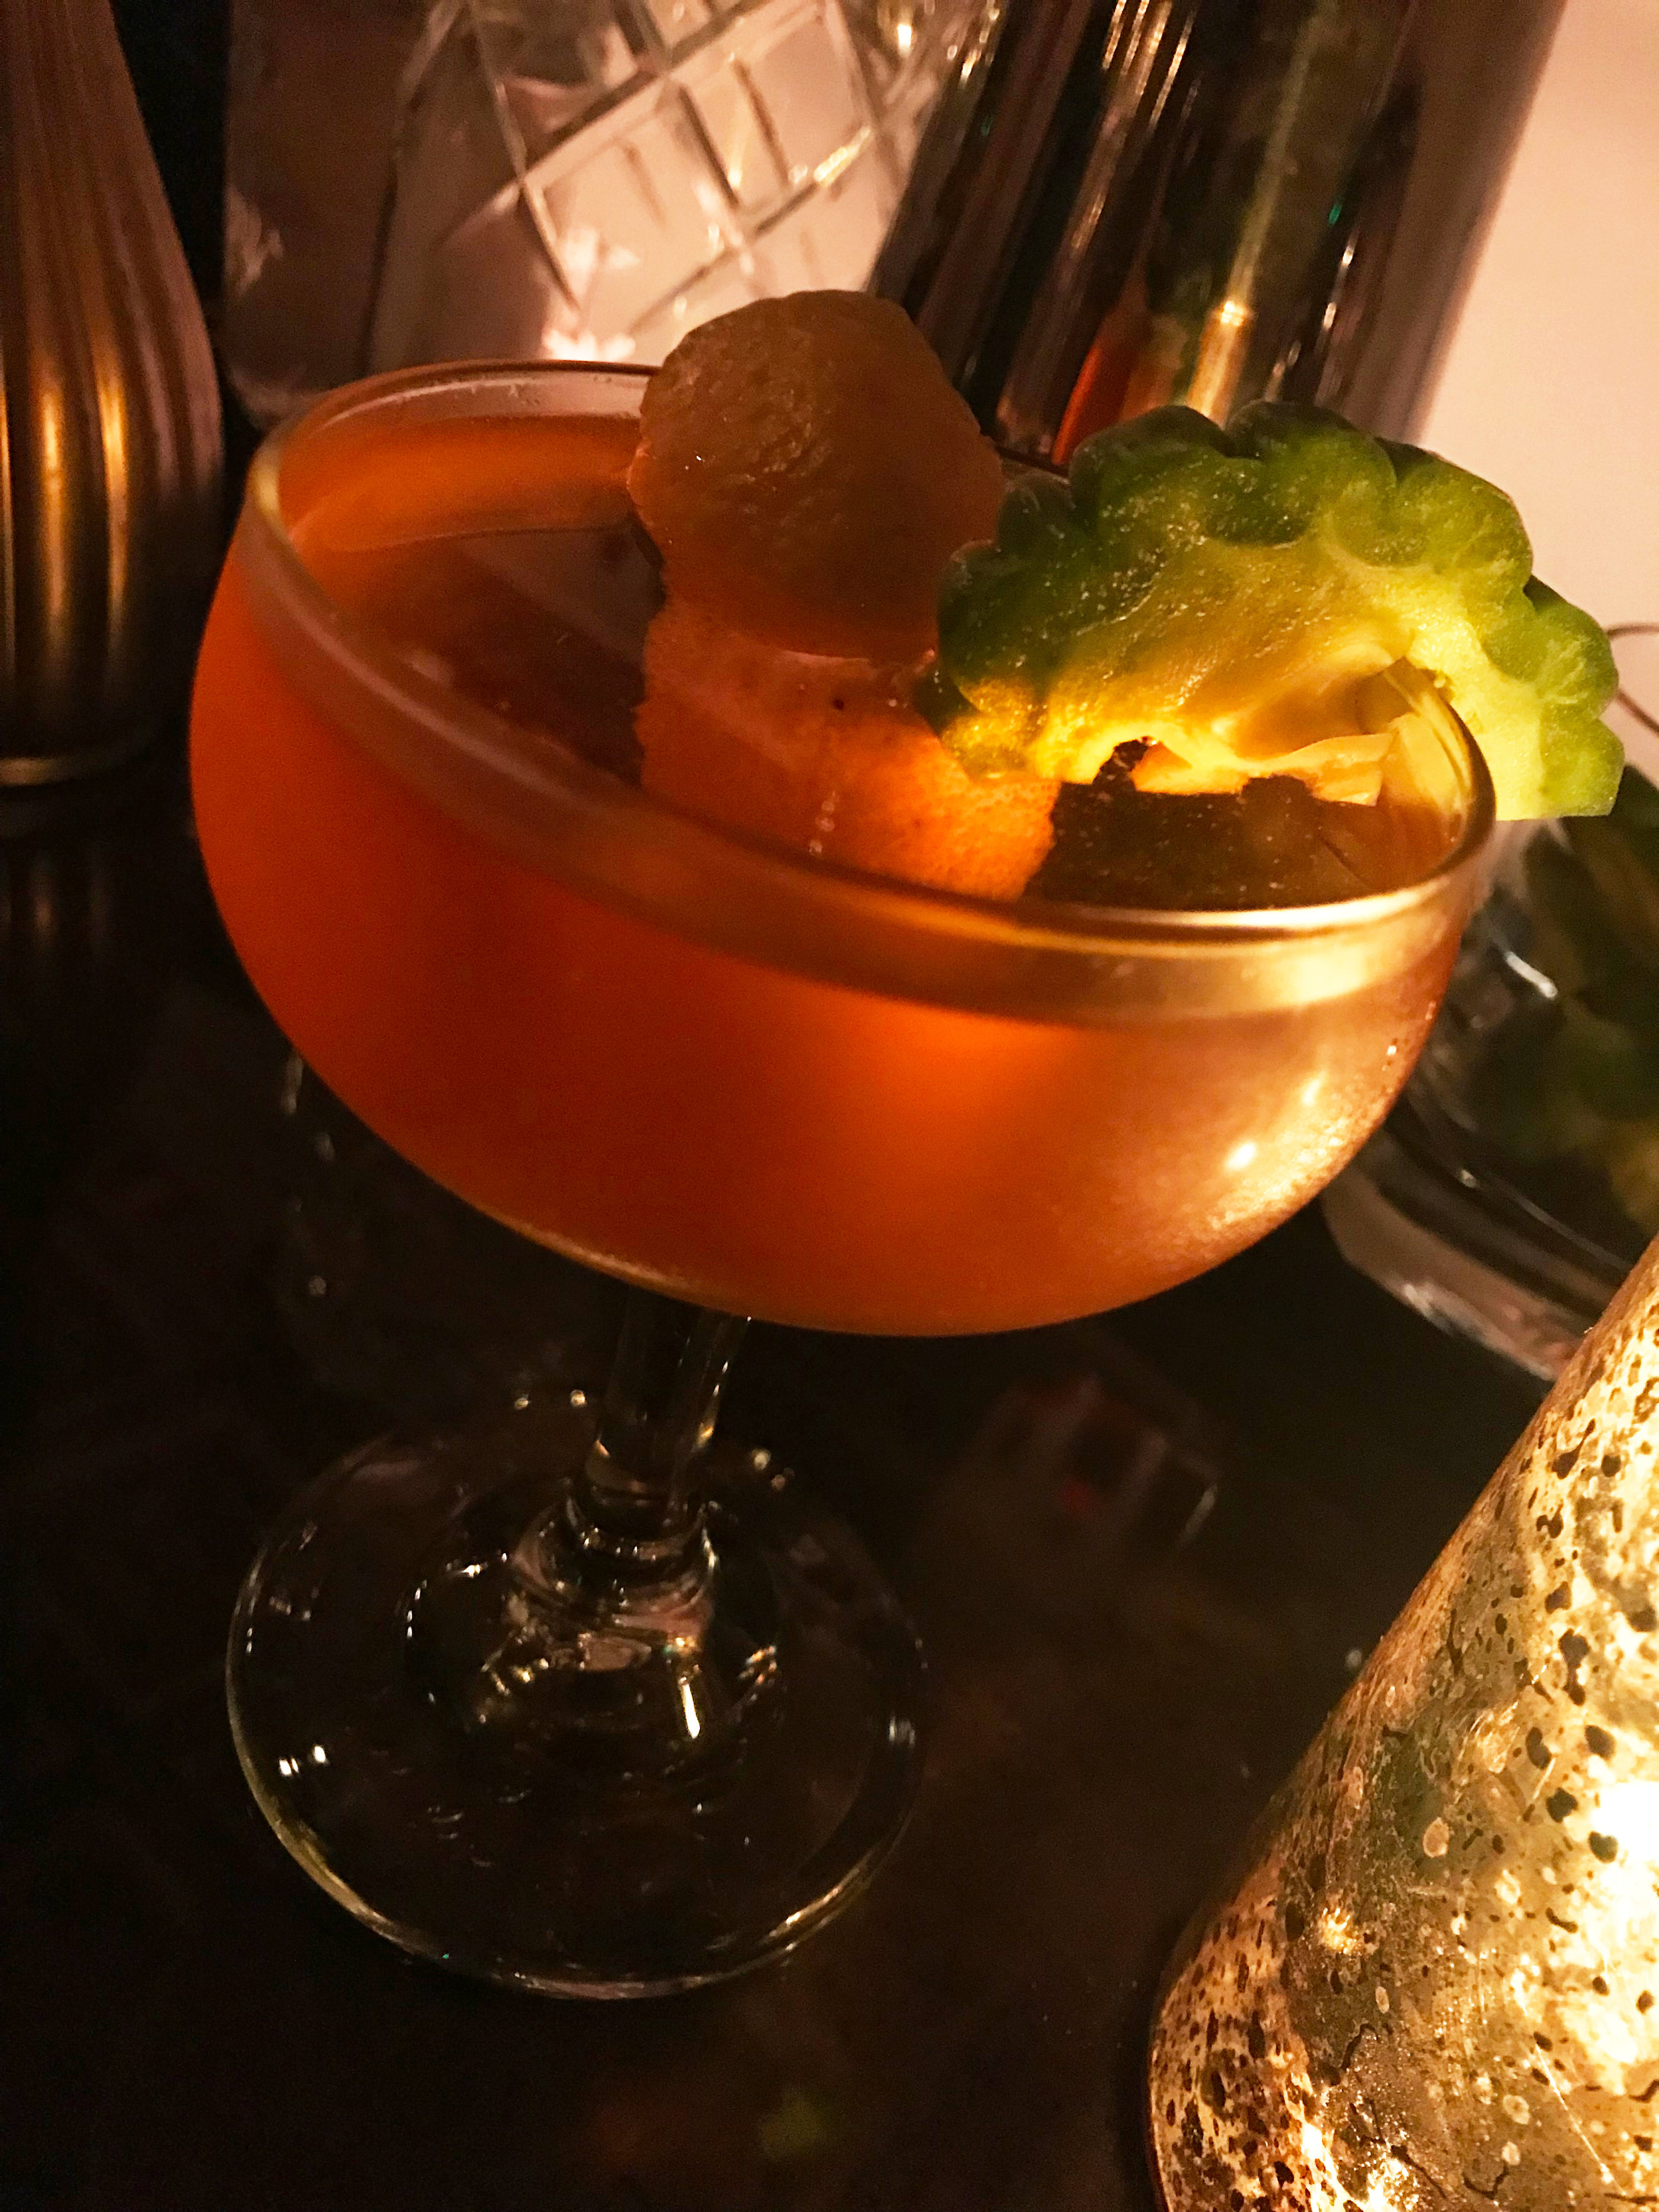 A bitter melon gin cocktail at Genever bar in Los Angeles' Historic Filipinotown. Photo by Paola Mardo.